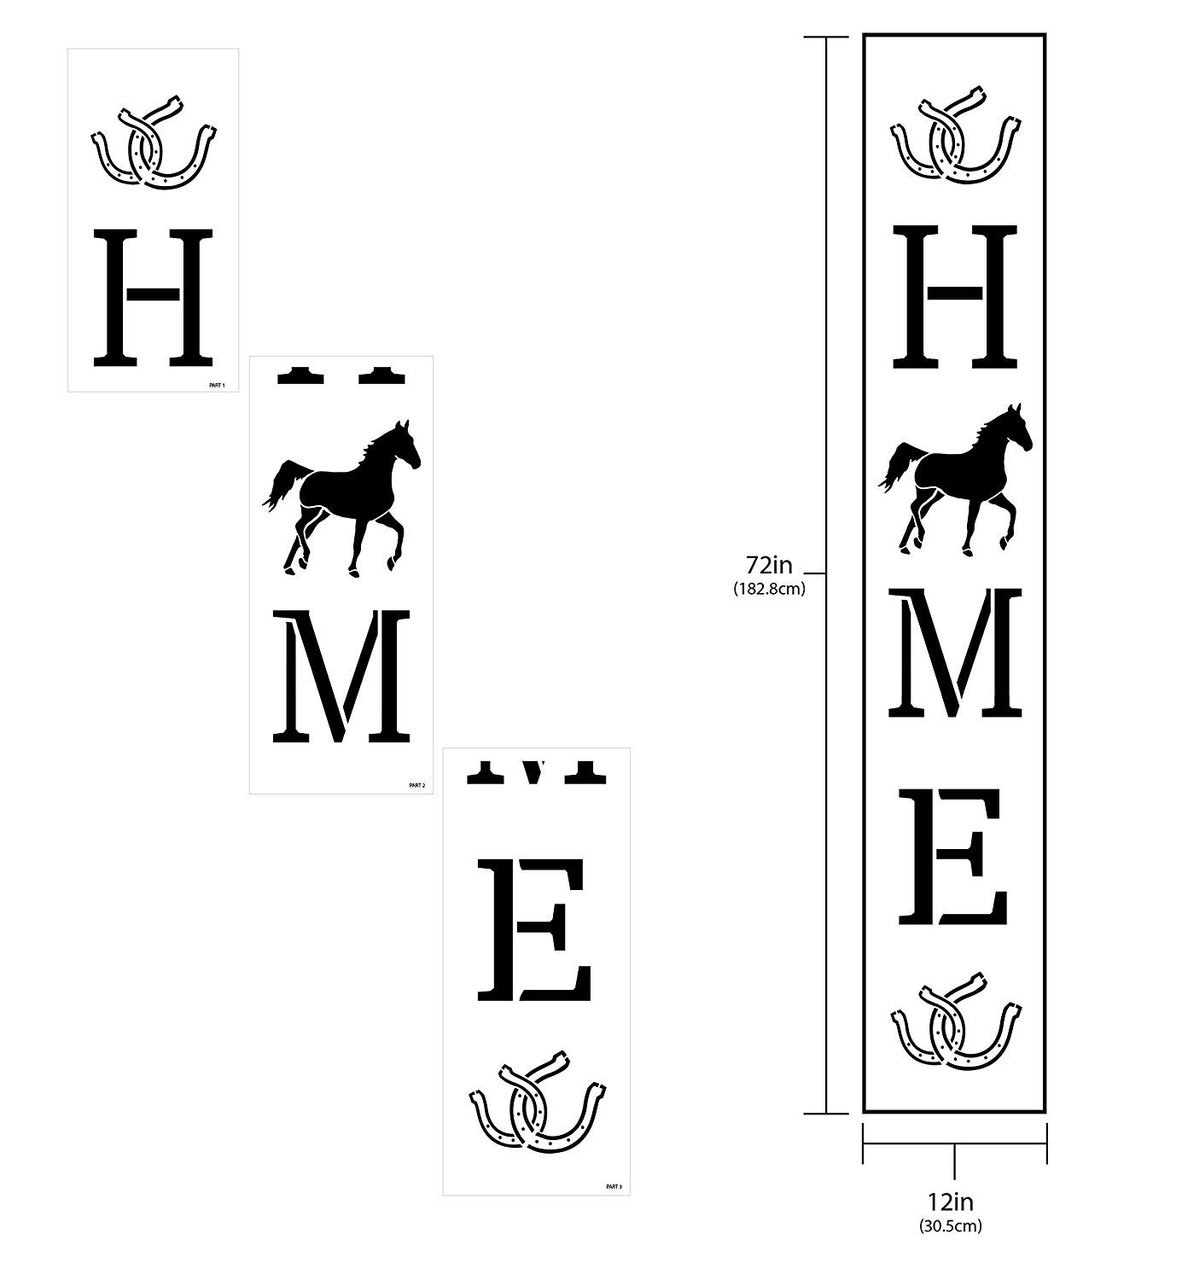 Home Tall Porch Stencil by StudioR12 | Trotting Horse & Horseshoes | 3 Piece | DIY Large Vertical Country Farmhouse Outdoor Decor | Craft & Paint Wood Leaner Signs | Reusable Mylar Template | Size 6ft